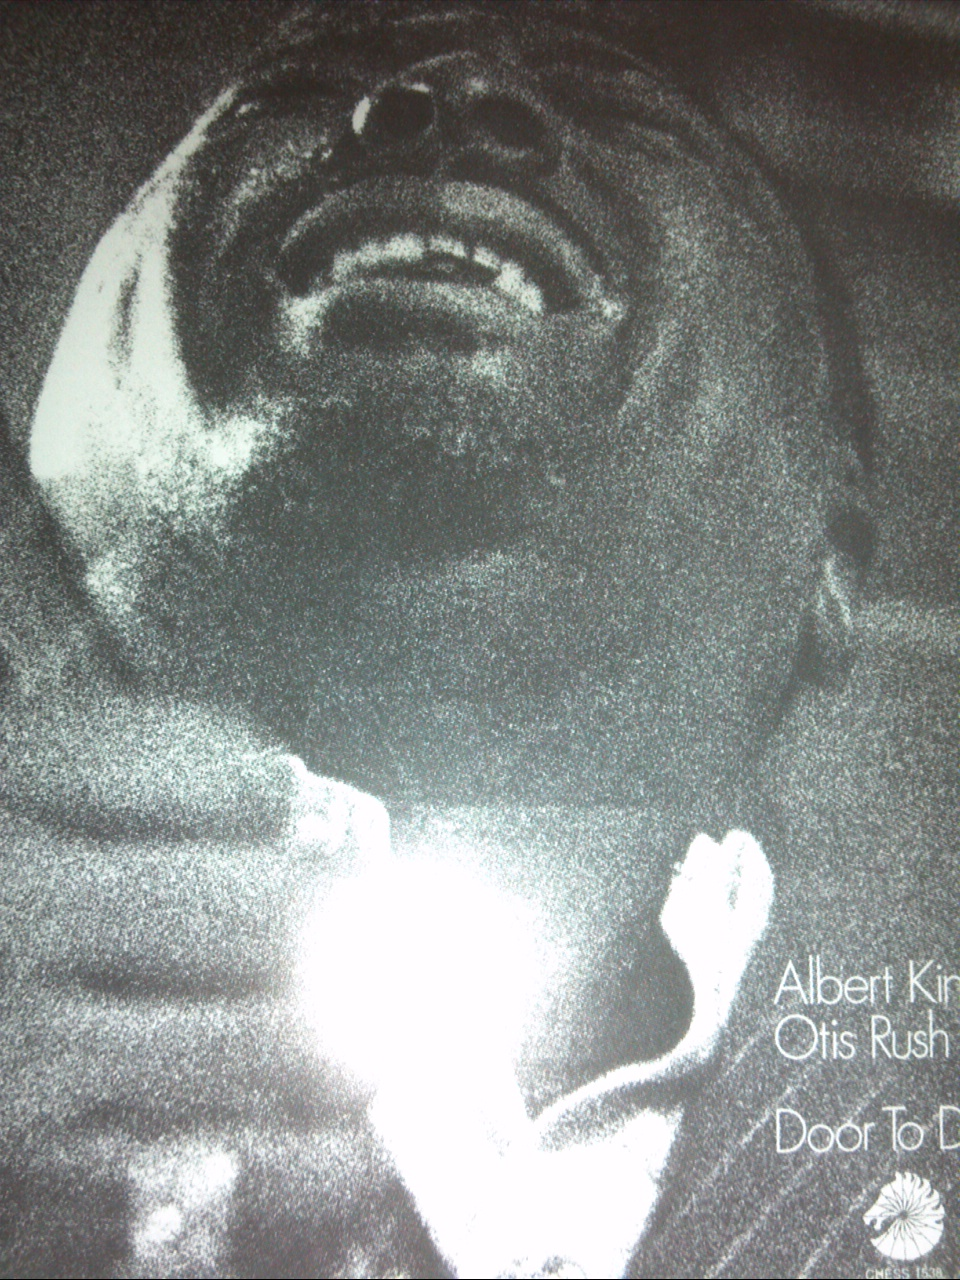 ALBERT KING   OTIS RUSH